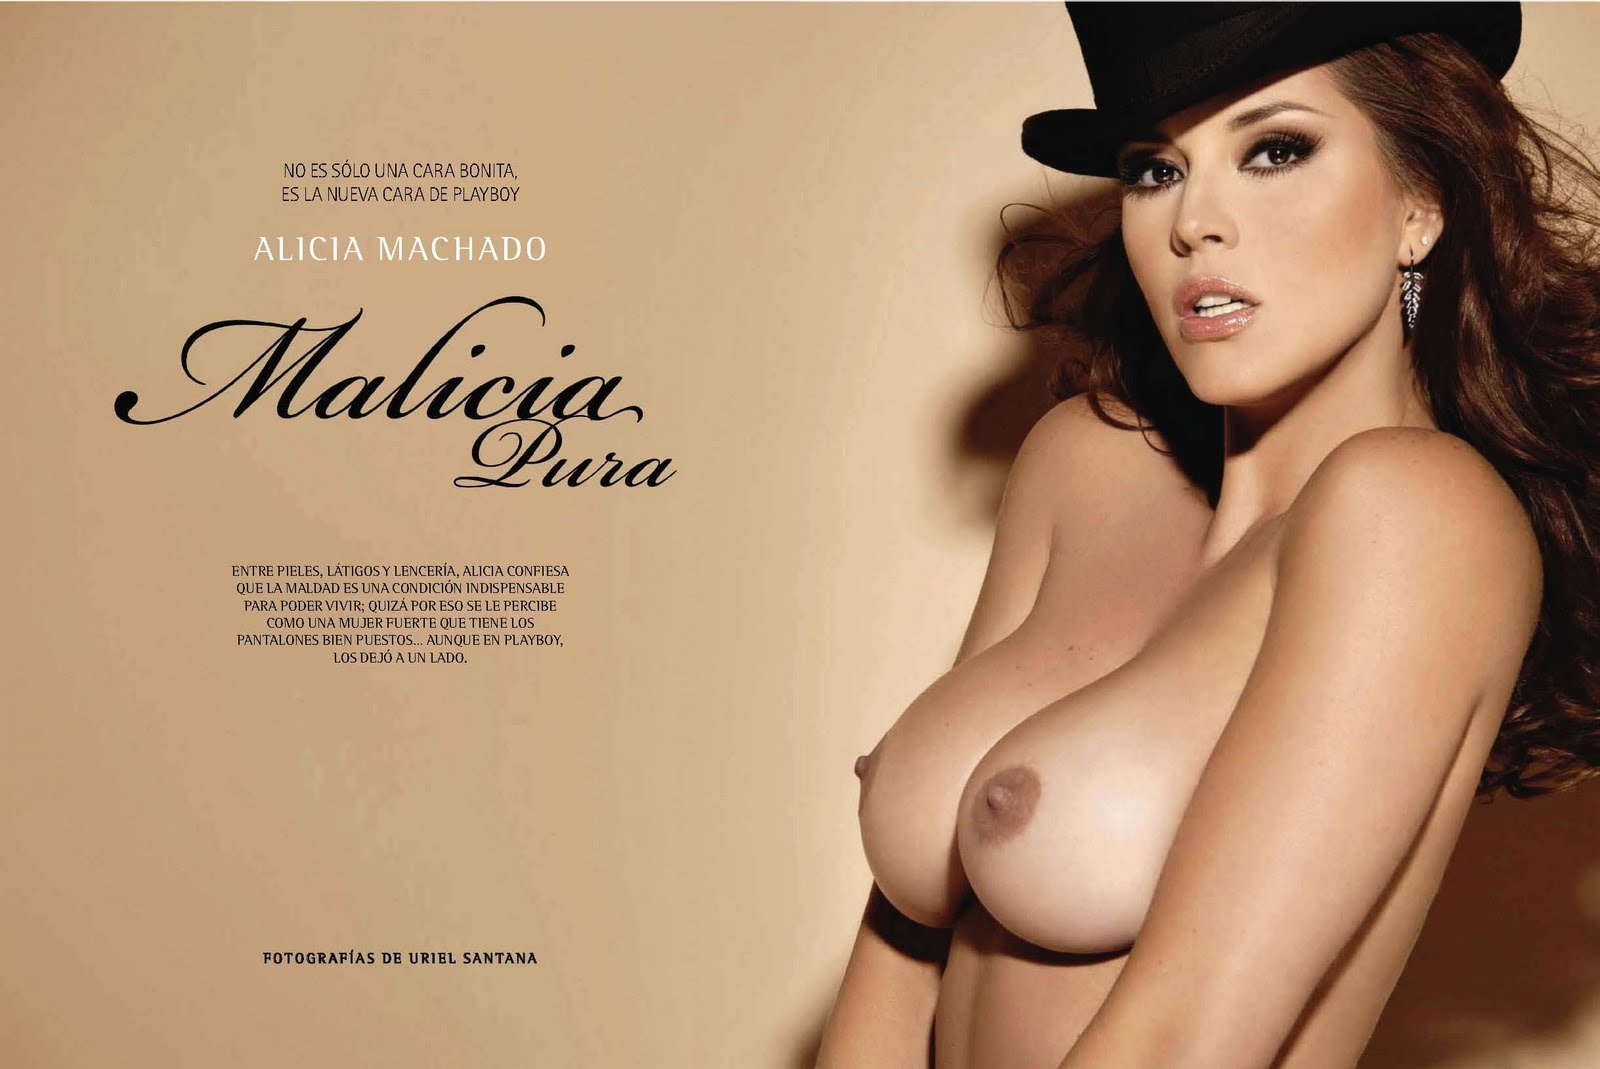 lesbians-with-alicia-machado-big-boobs-hot-the